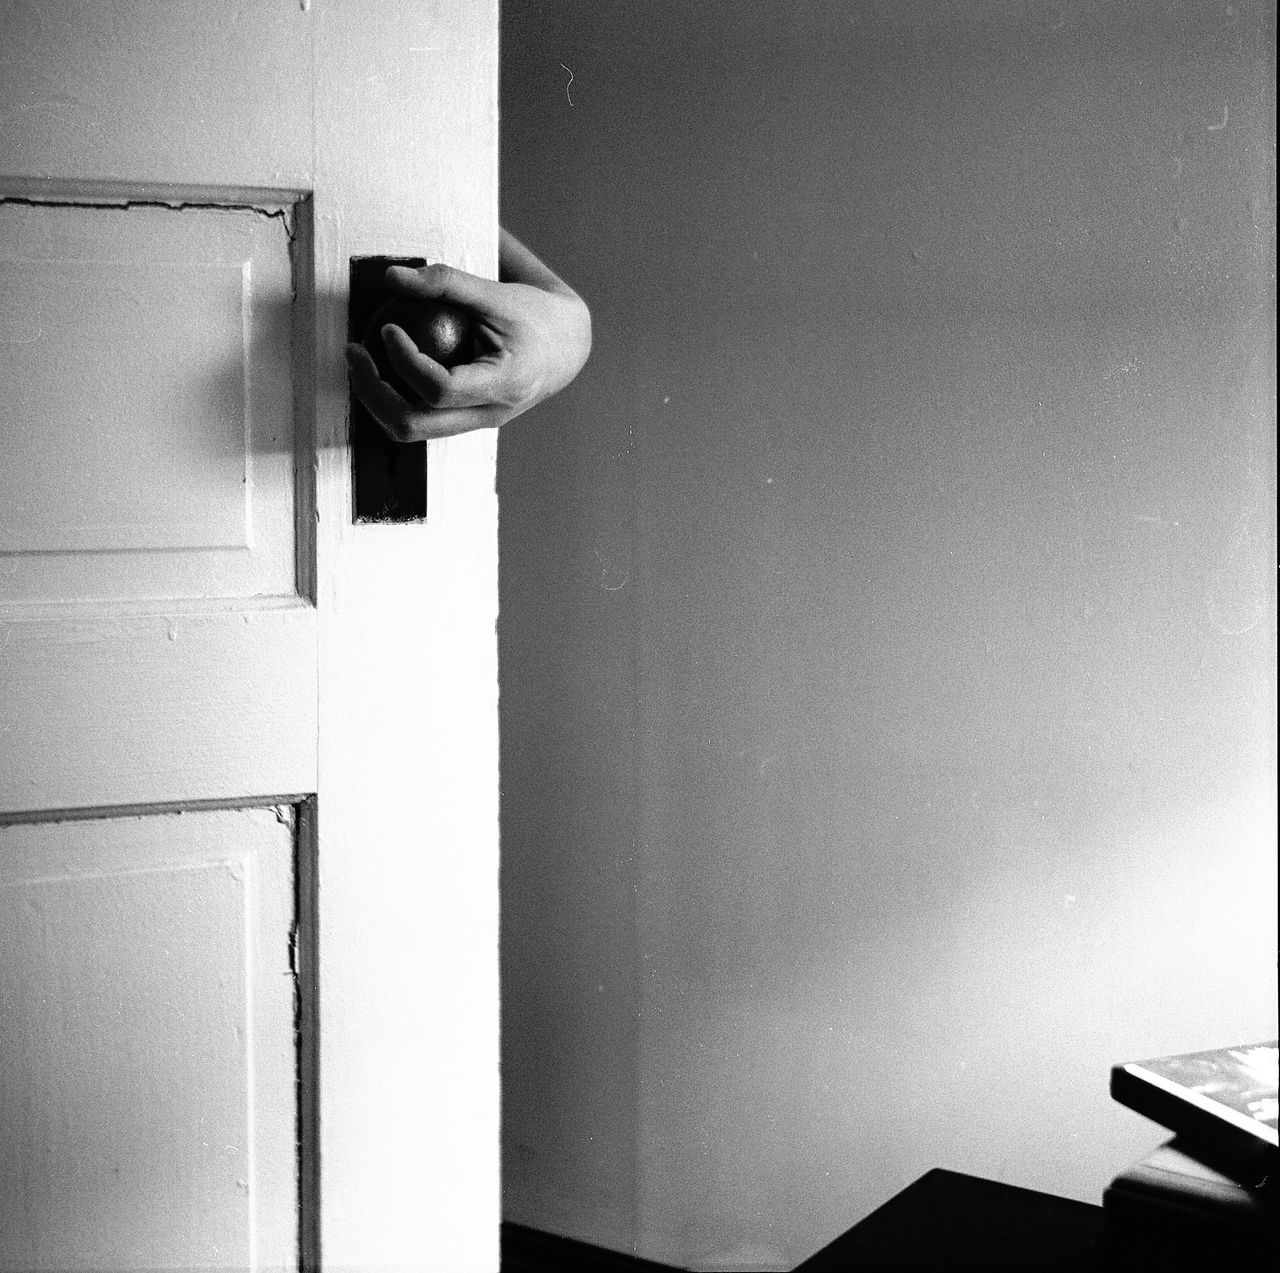 March 17, 2015 black and white door self portrait